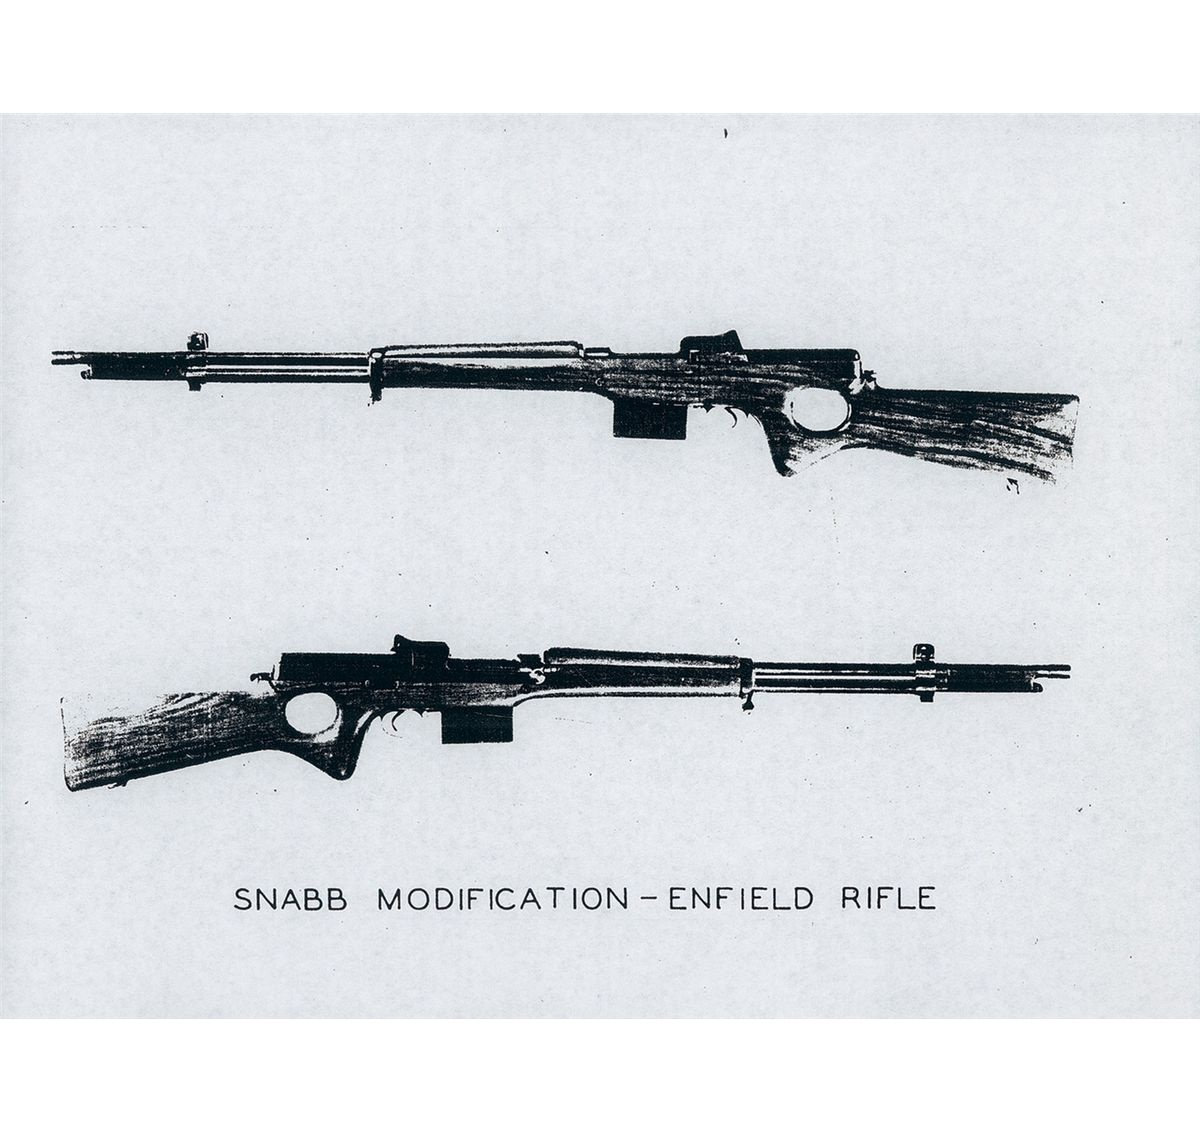 How to adapt a bolt action sniper rifle into a semi-auto